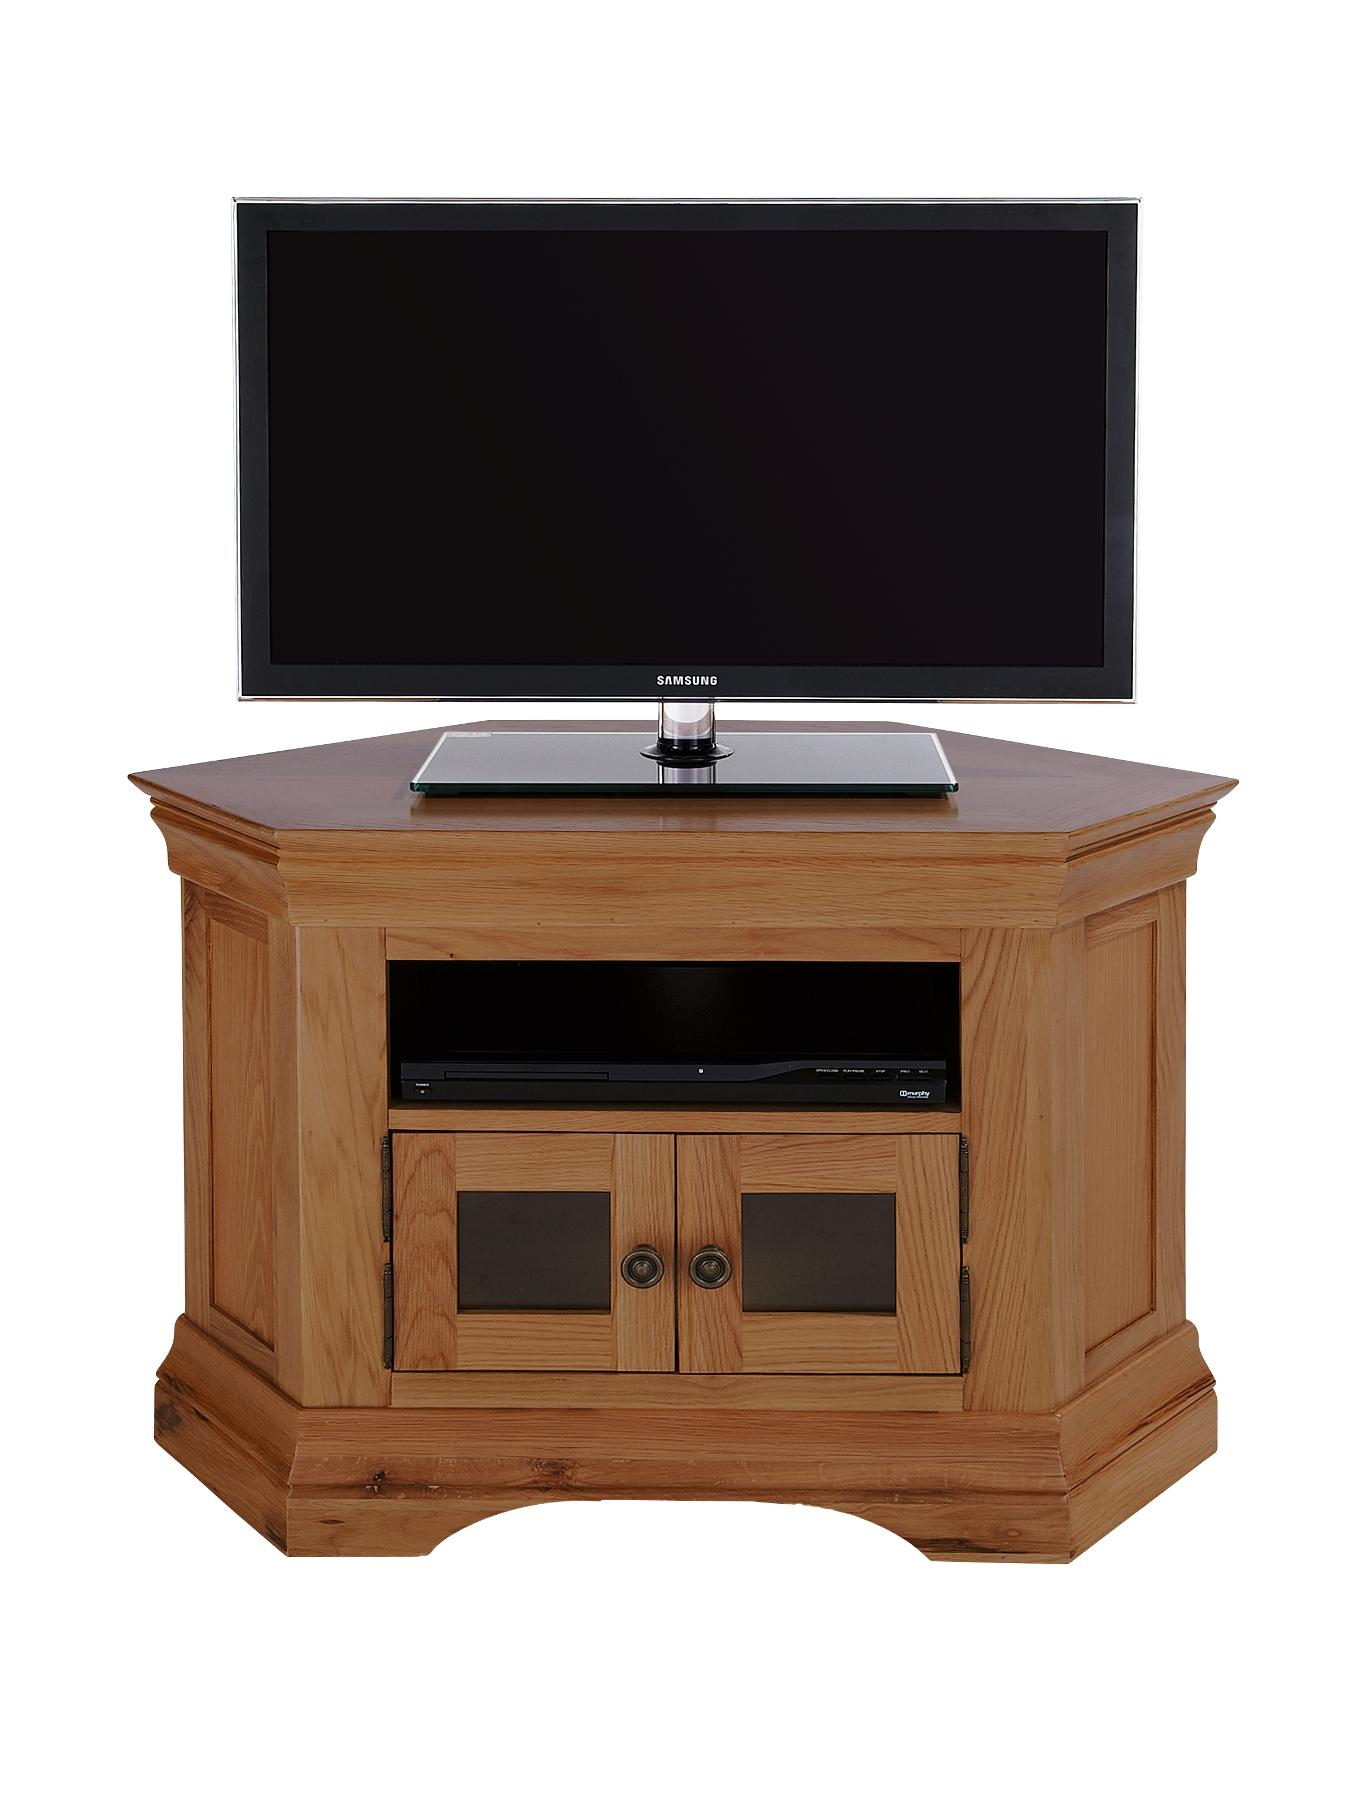 Constance Ready Assembled Solid Oak Corner TV Unit - fits up to 42 inch TV